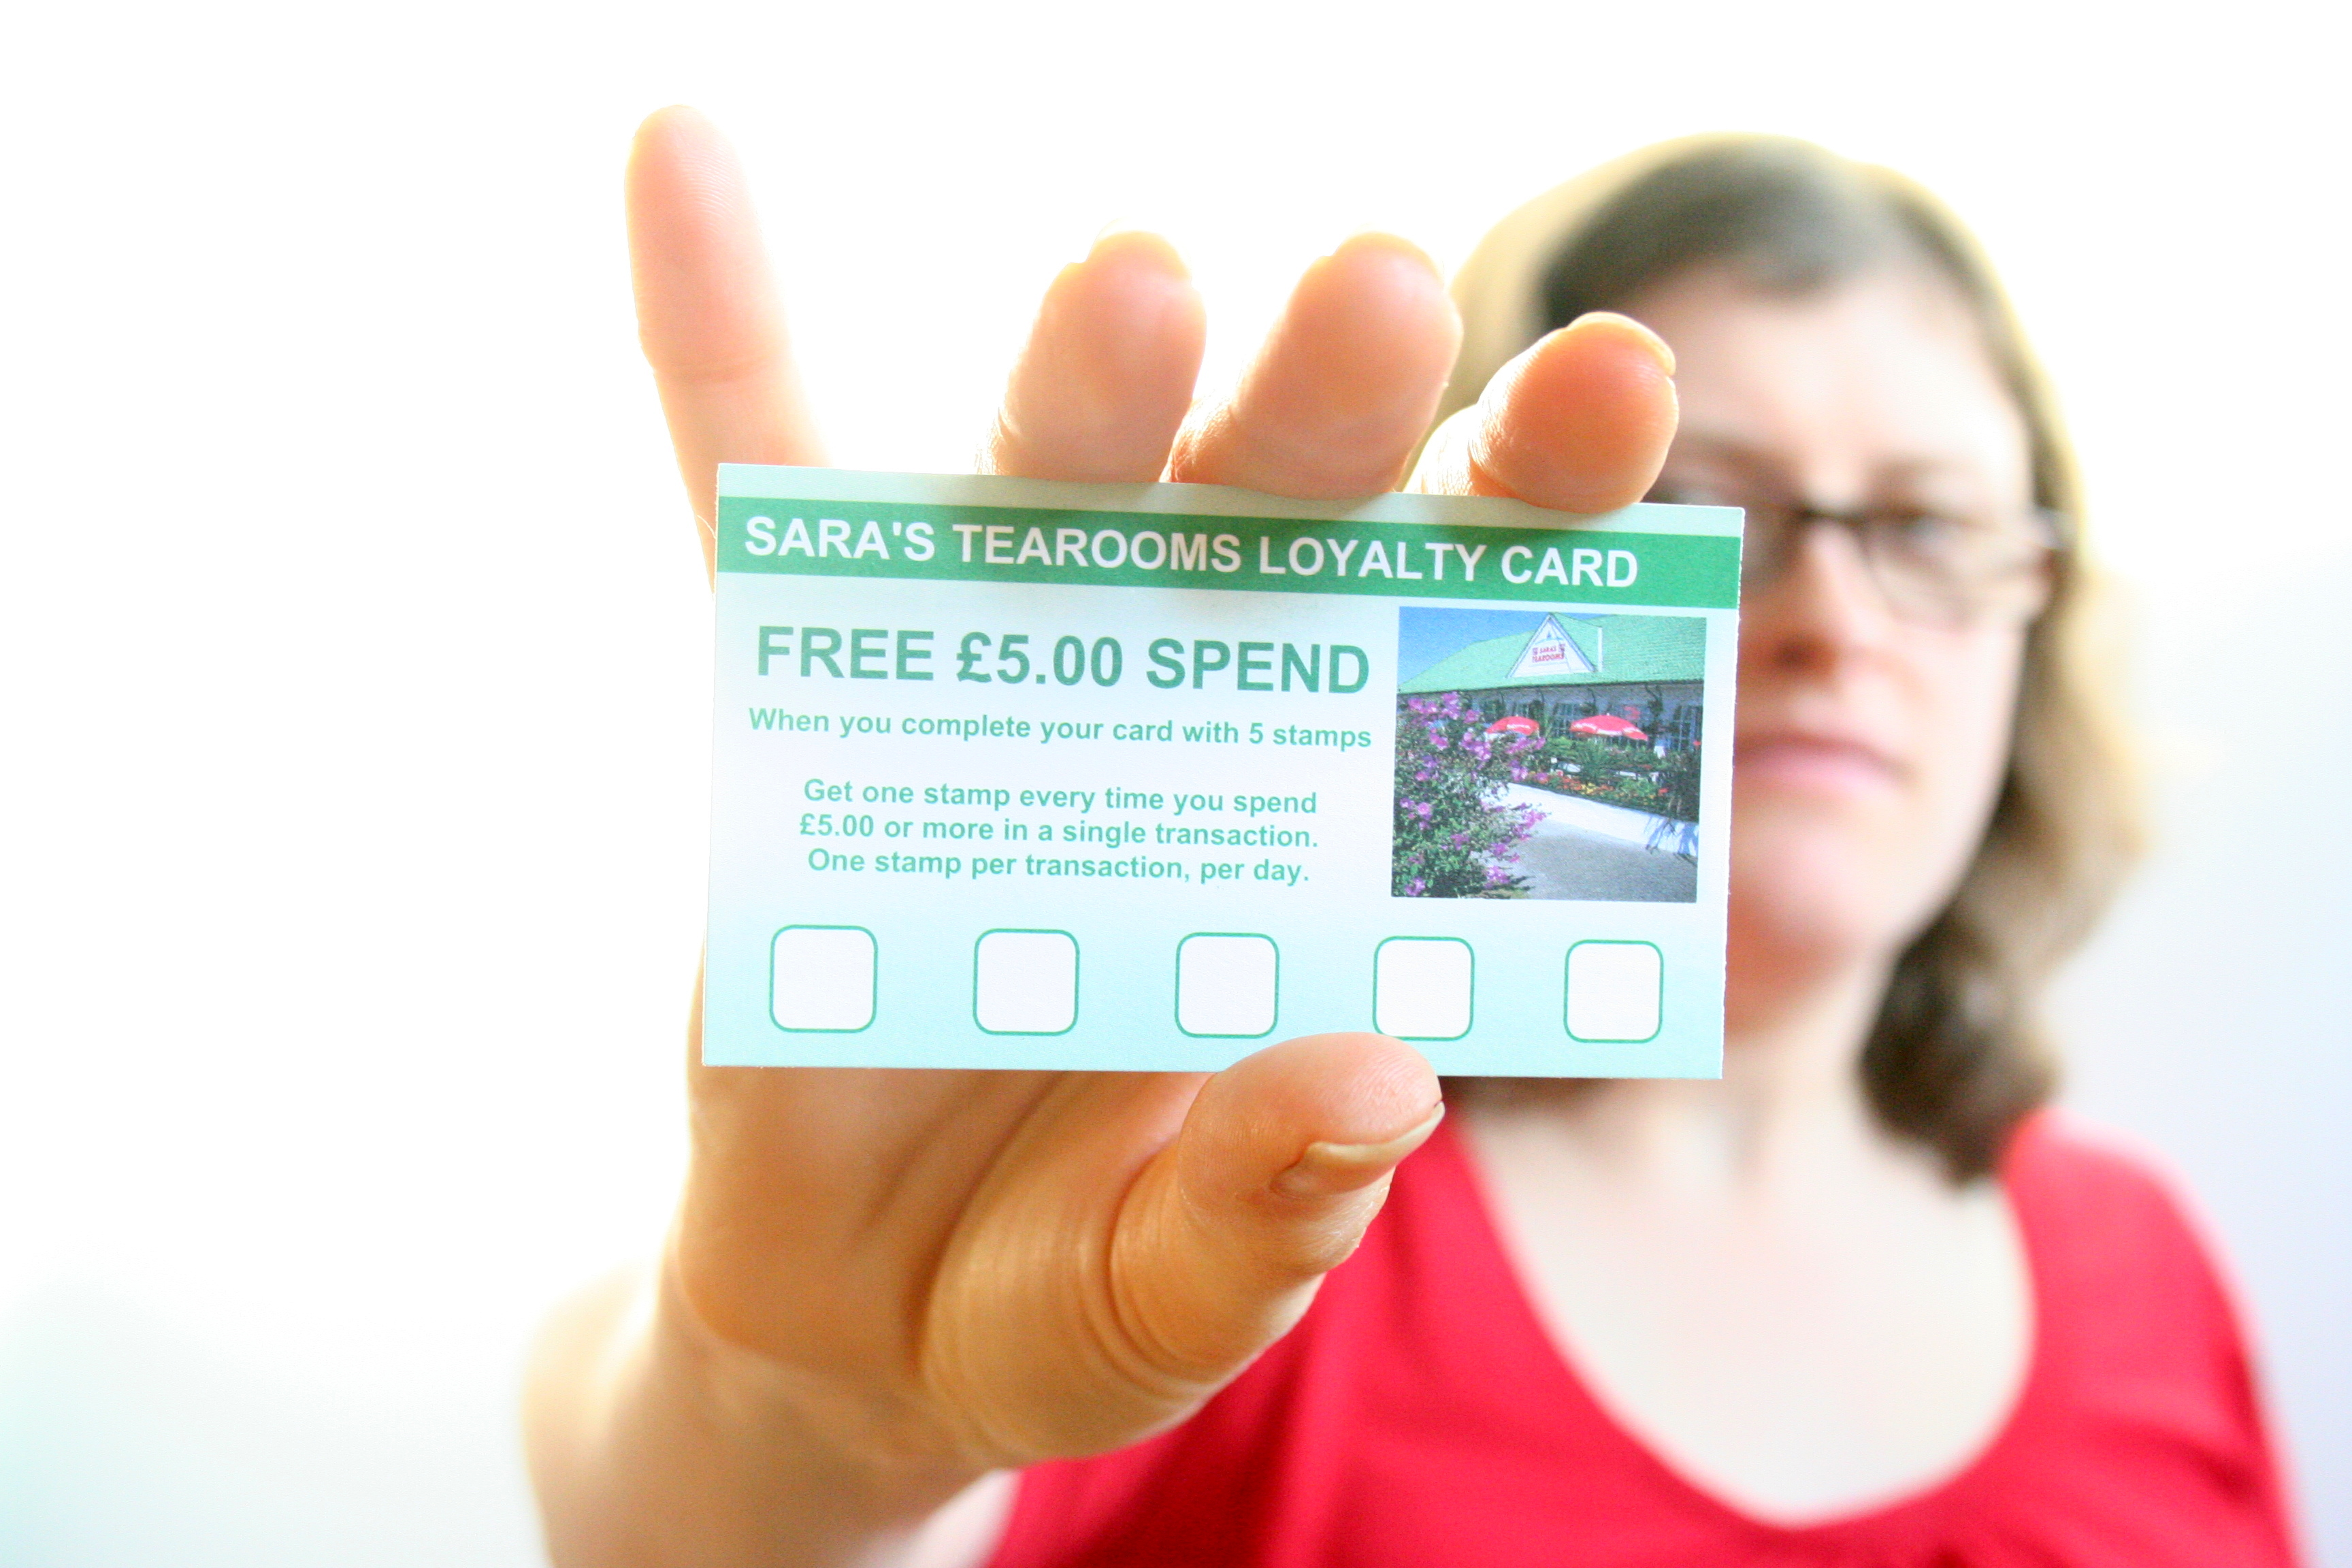 Sara's Tearooms Loyalty Card